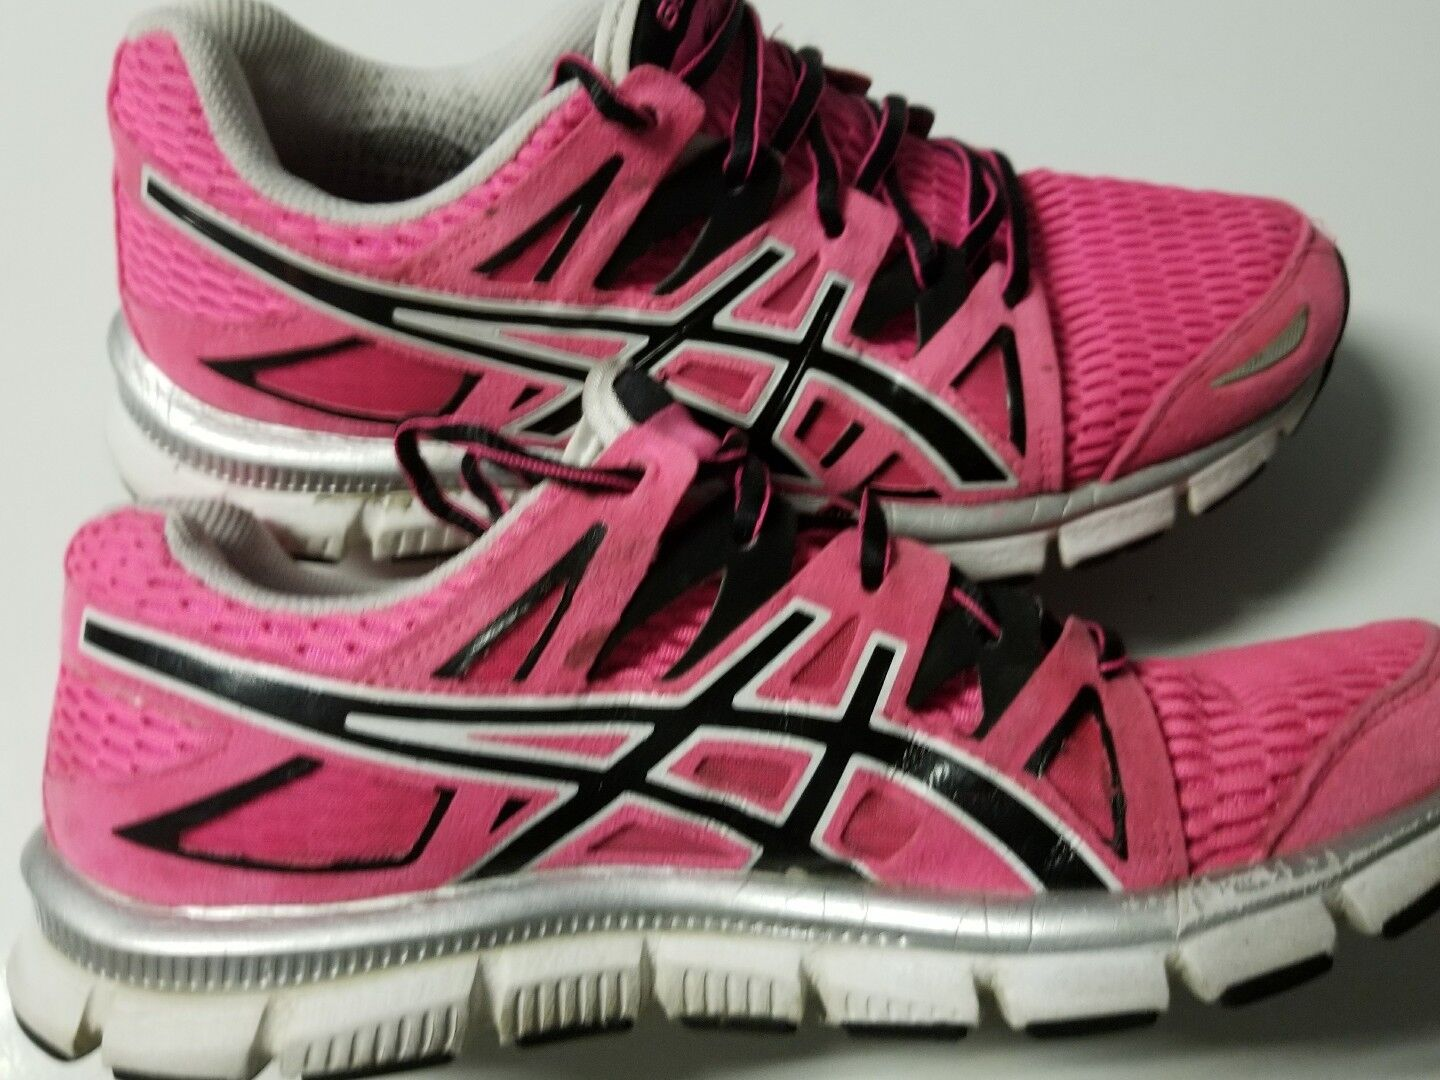 ASICS Gel bluer 33 2.0 Running shoes Women's Size 6.5 US RN T2H8N Pink